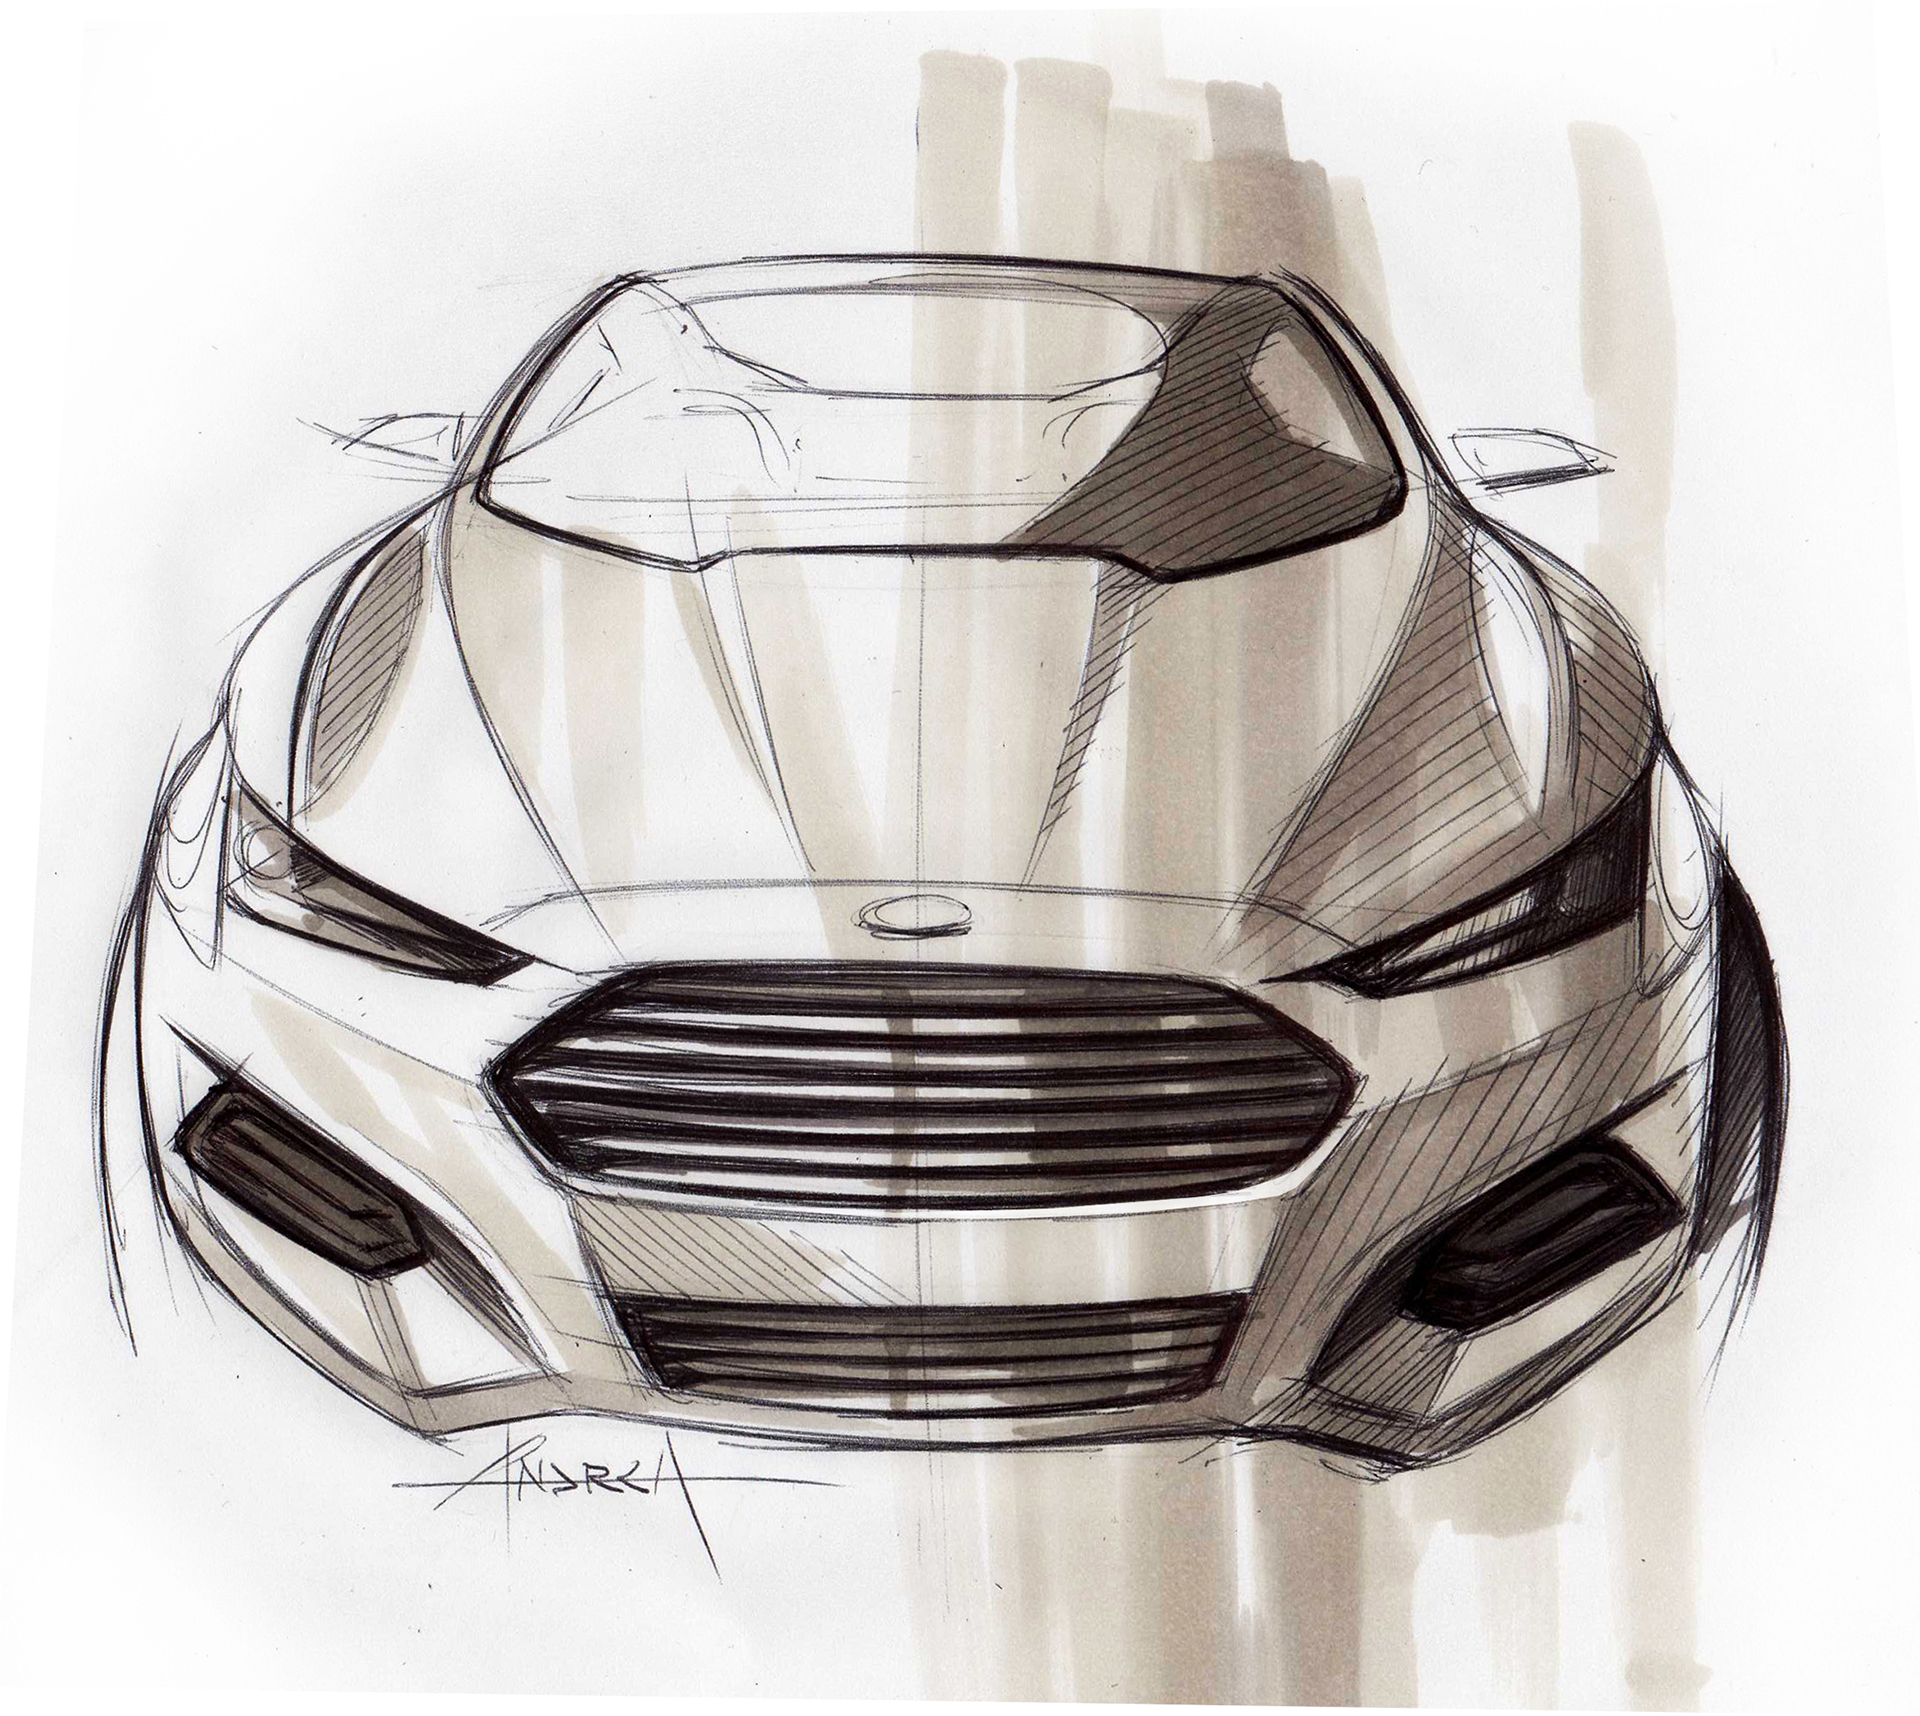 Ford Mondeo - sketch